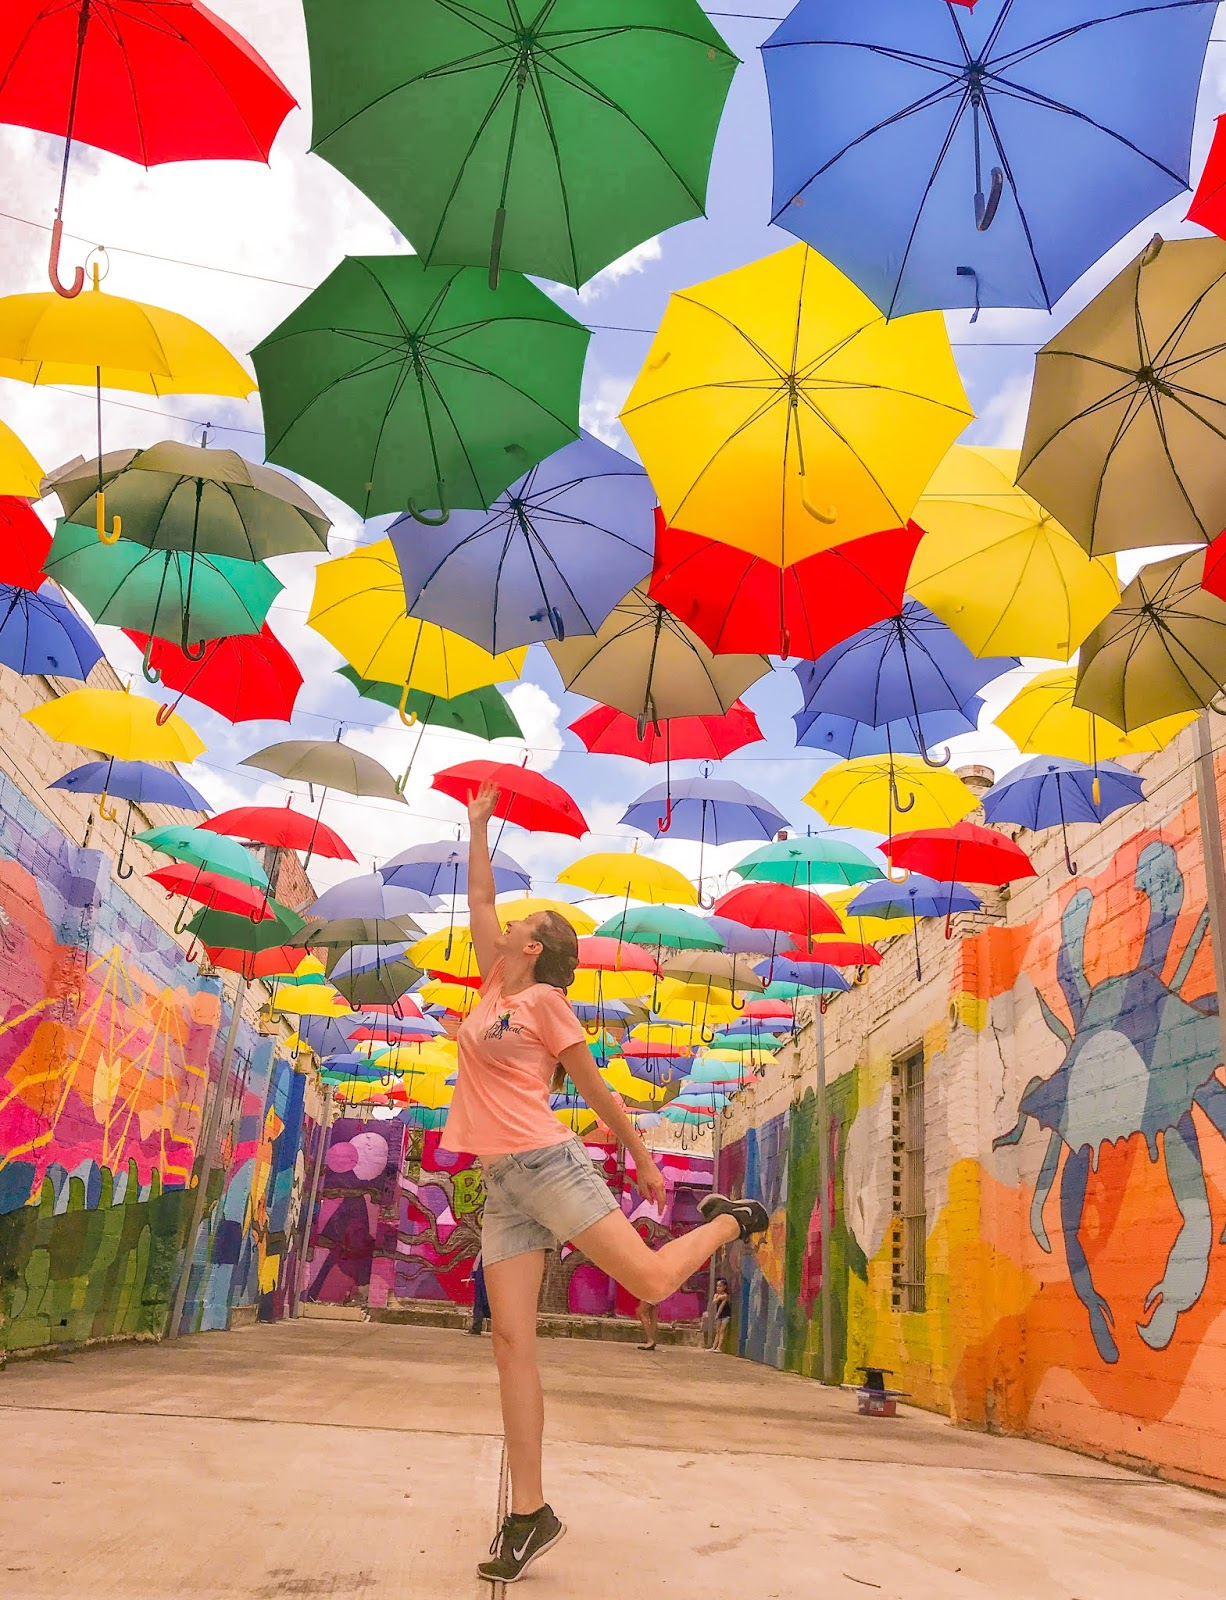 The Umbrella Alley in Baytown, TX